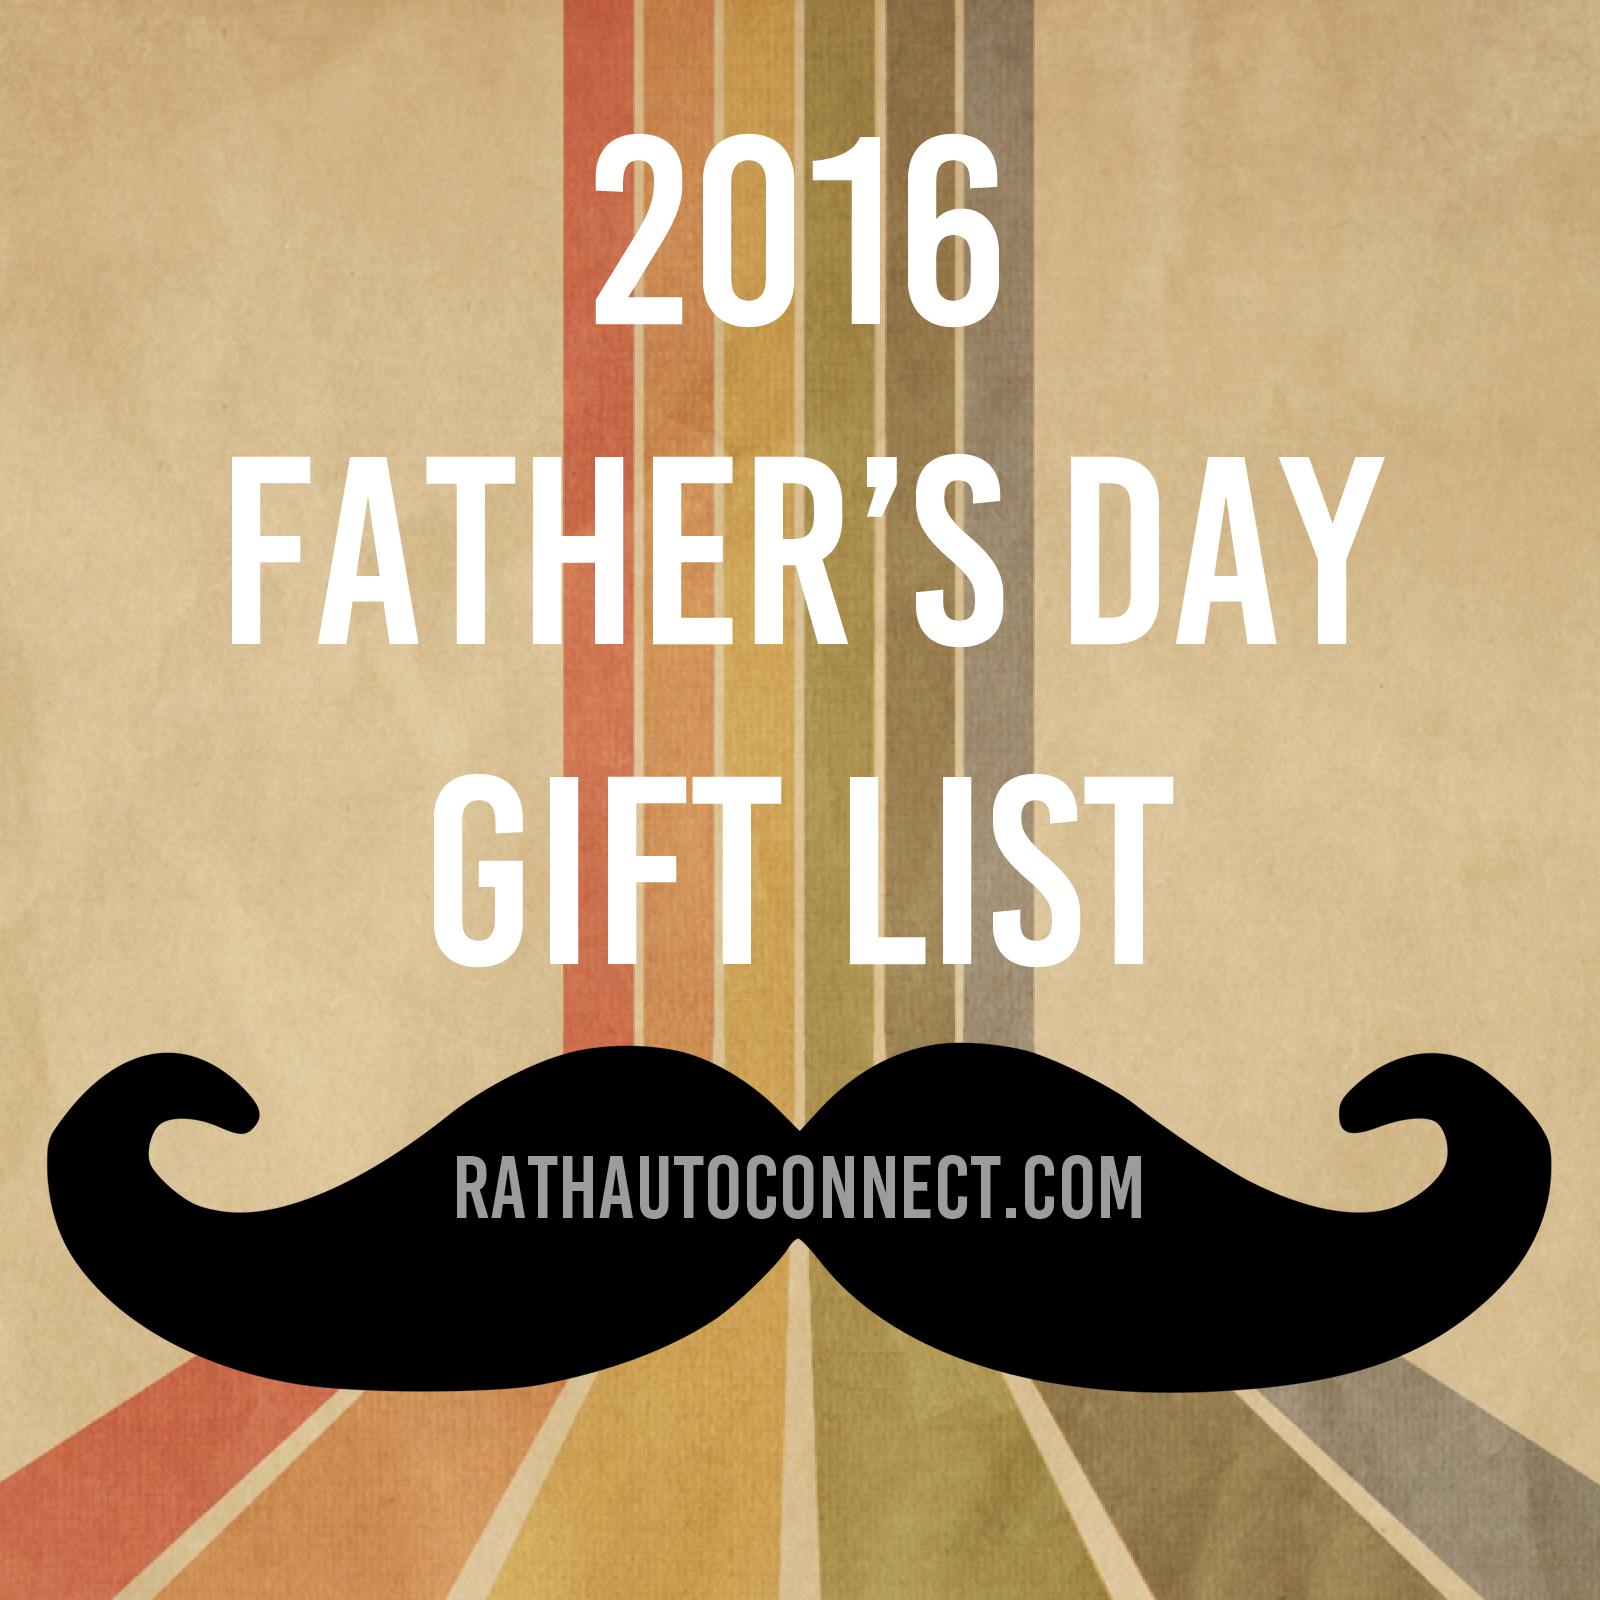 Rath Auto Resources 2016 Fathers Day Gift List